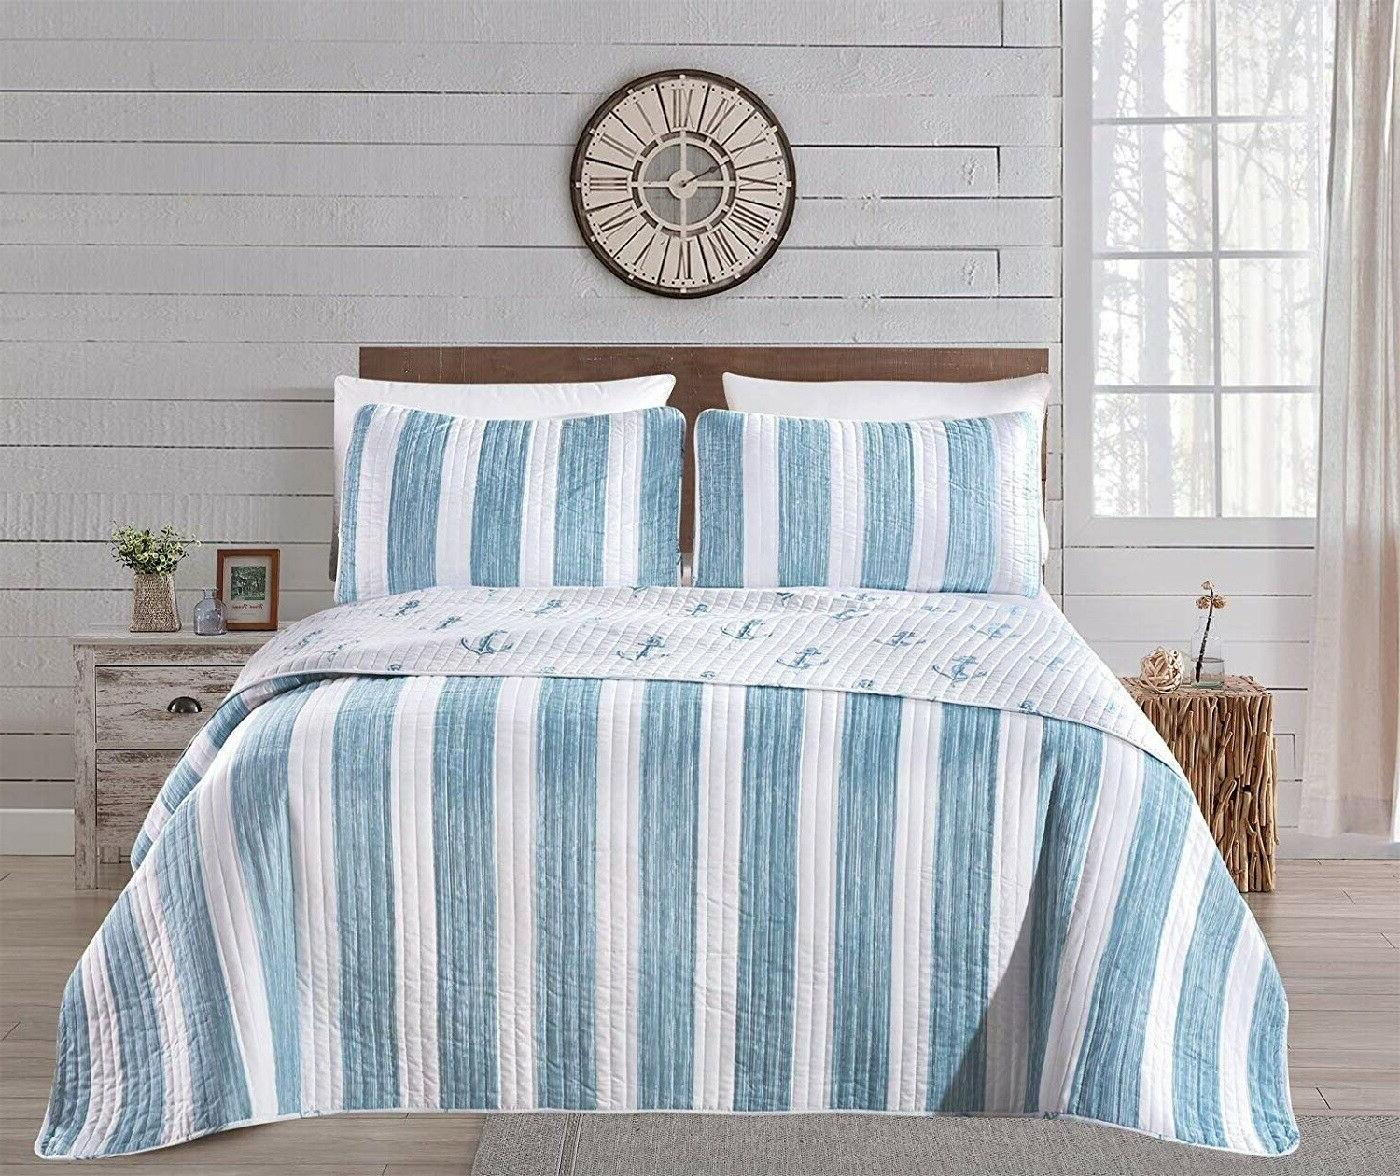 Coastal Quilt Queen Reversible Blue Theme Bed Cover